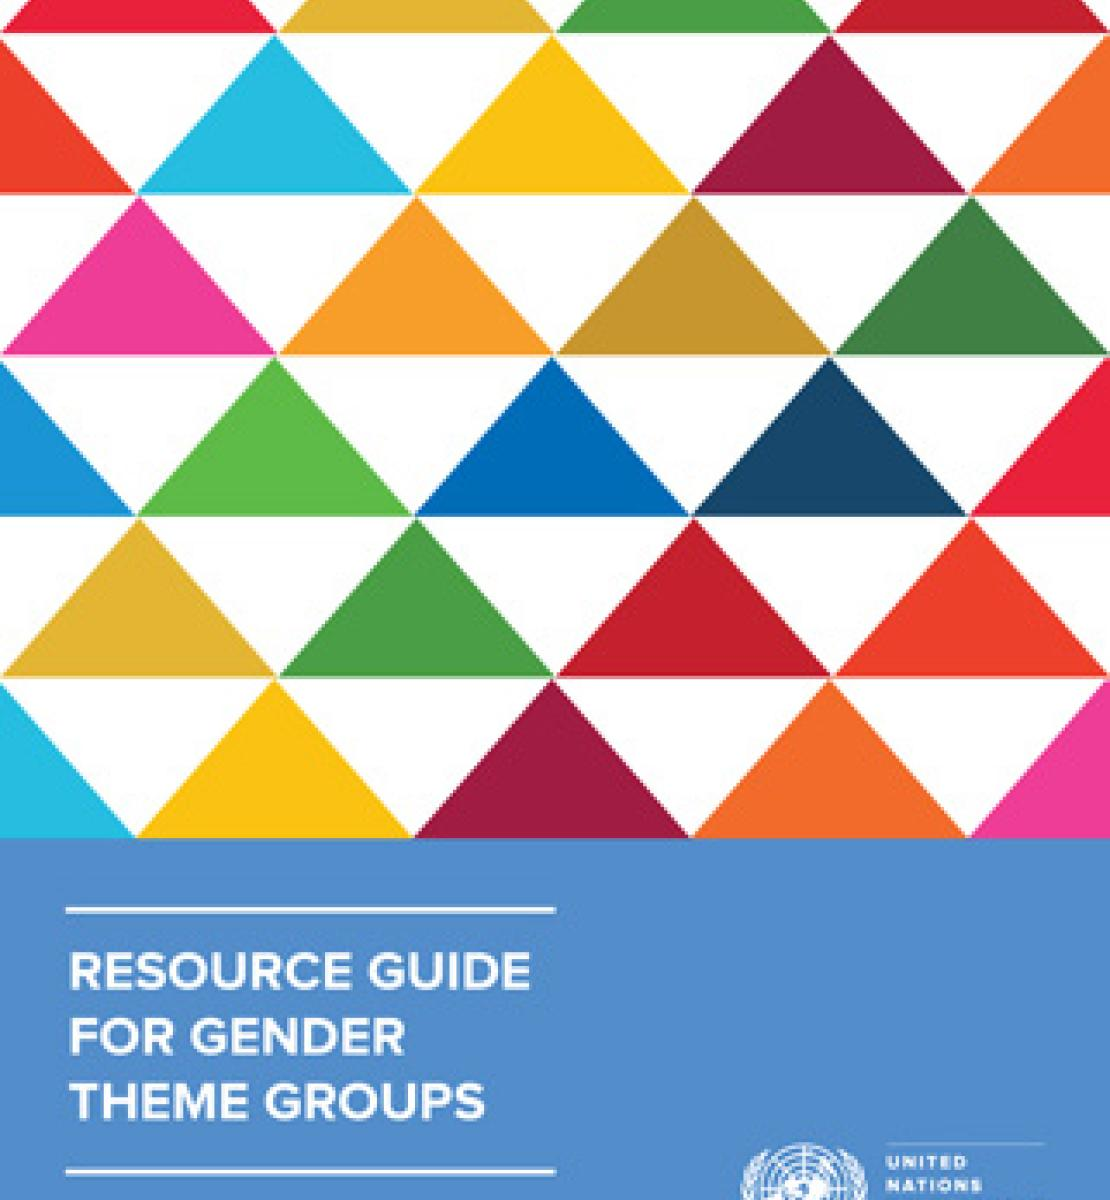 RESOURCE GUIDE FOR GENDER THEME GROUPS